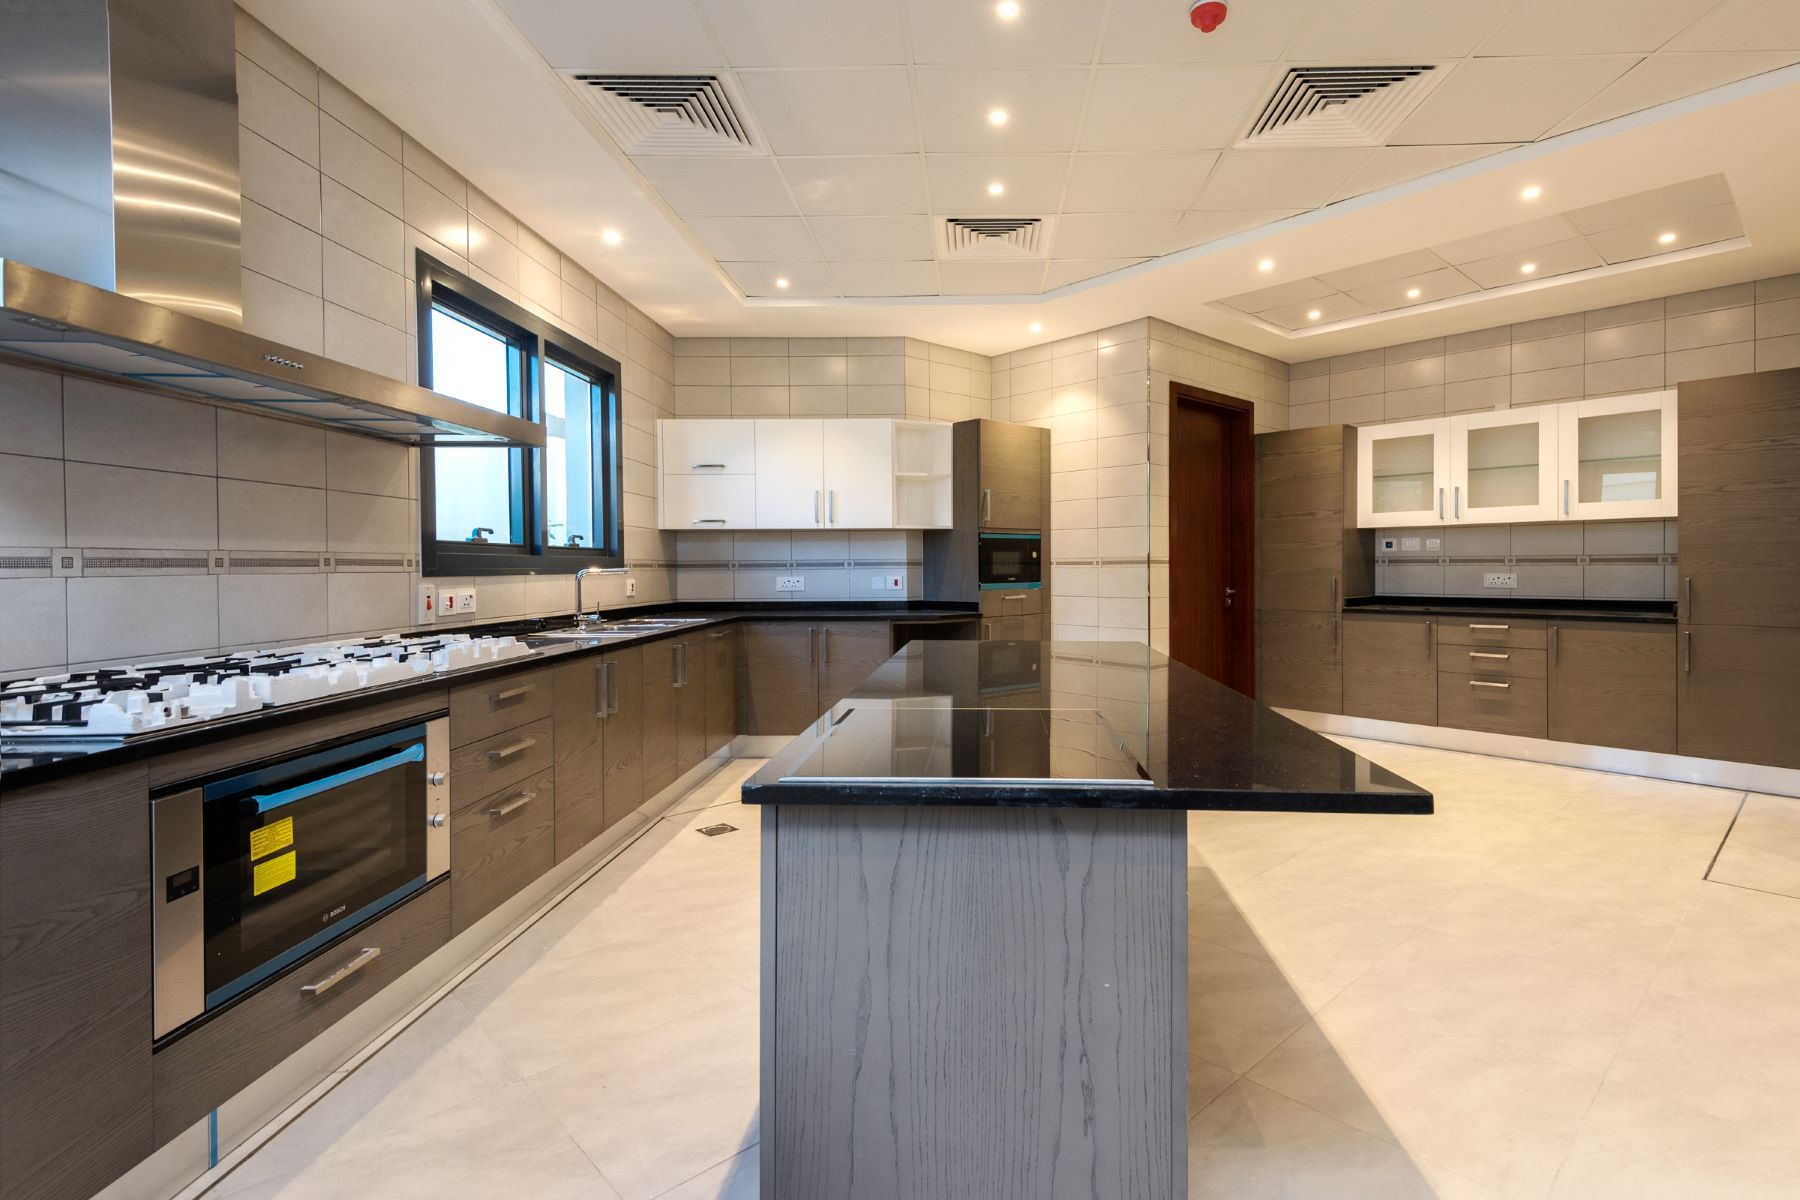 Additional photo for property listing at VIP Frond  4 Luxury Villas Tip Location 迪拜, 杜拜 阿联酋